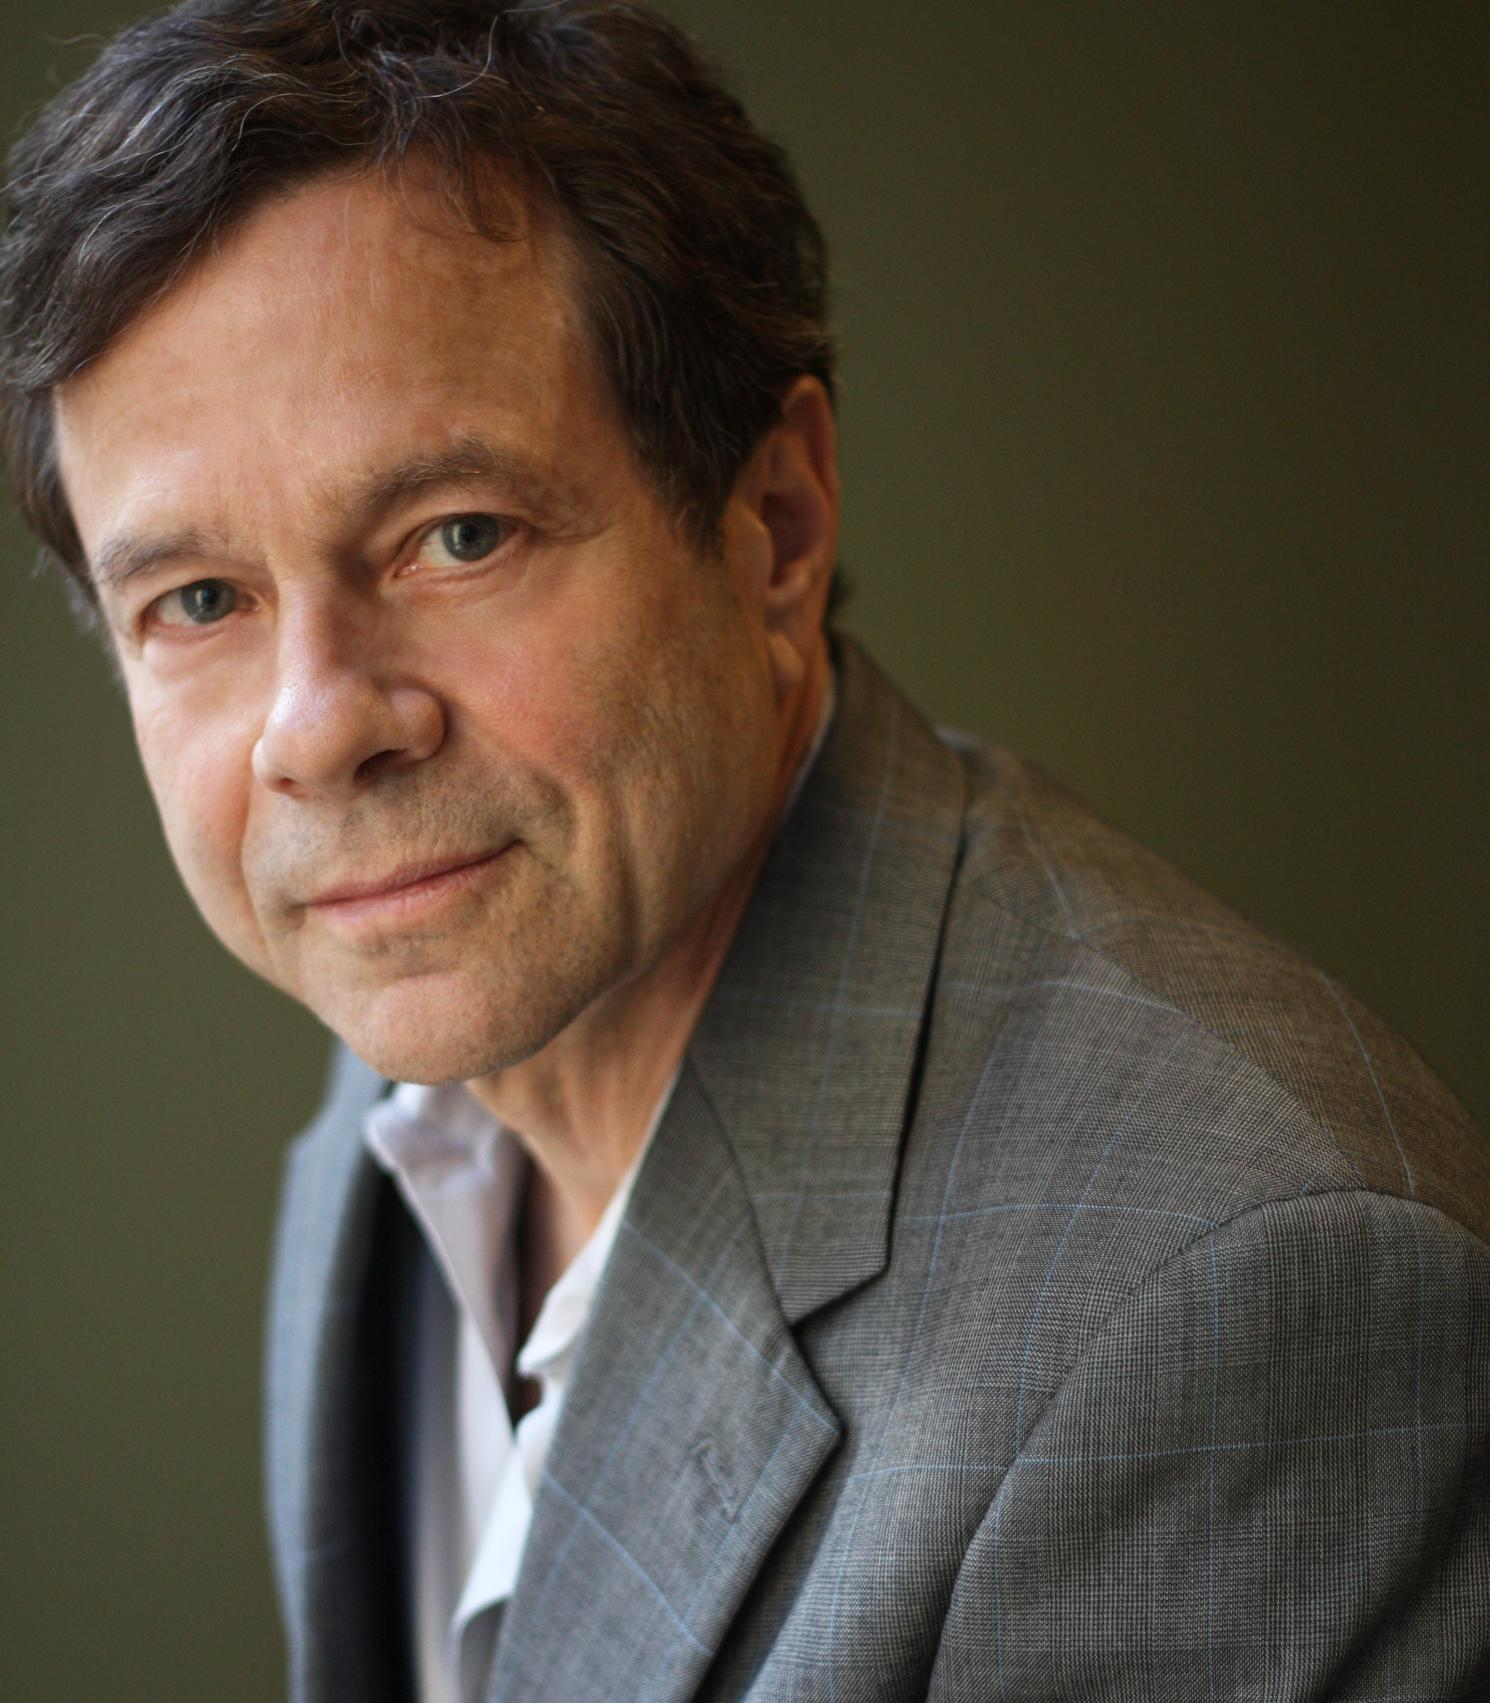 TED Book author: Alan Lightman